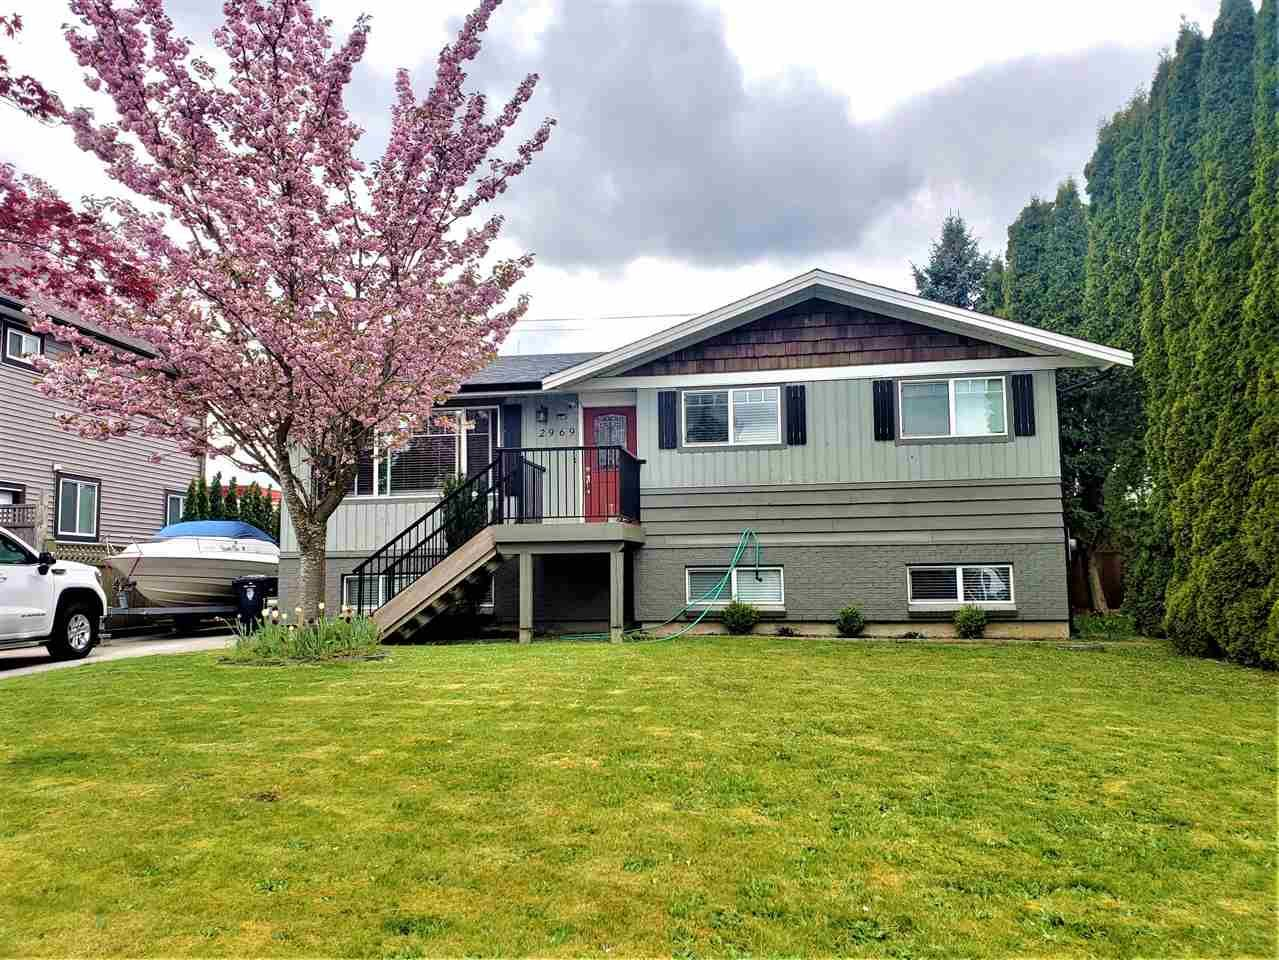 """Main Photo: 2969 264A Street in Langley: Aldergrove Langley House for sale in """"Aldergrove"""" : MLS®# R2572607"""